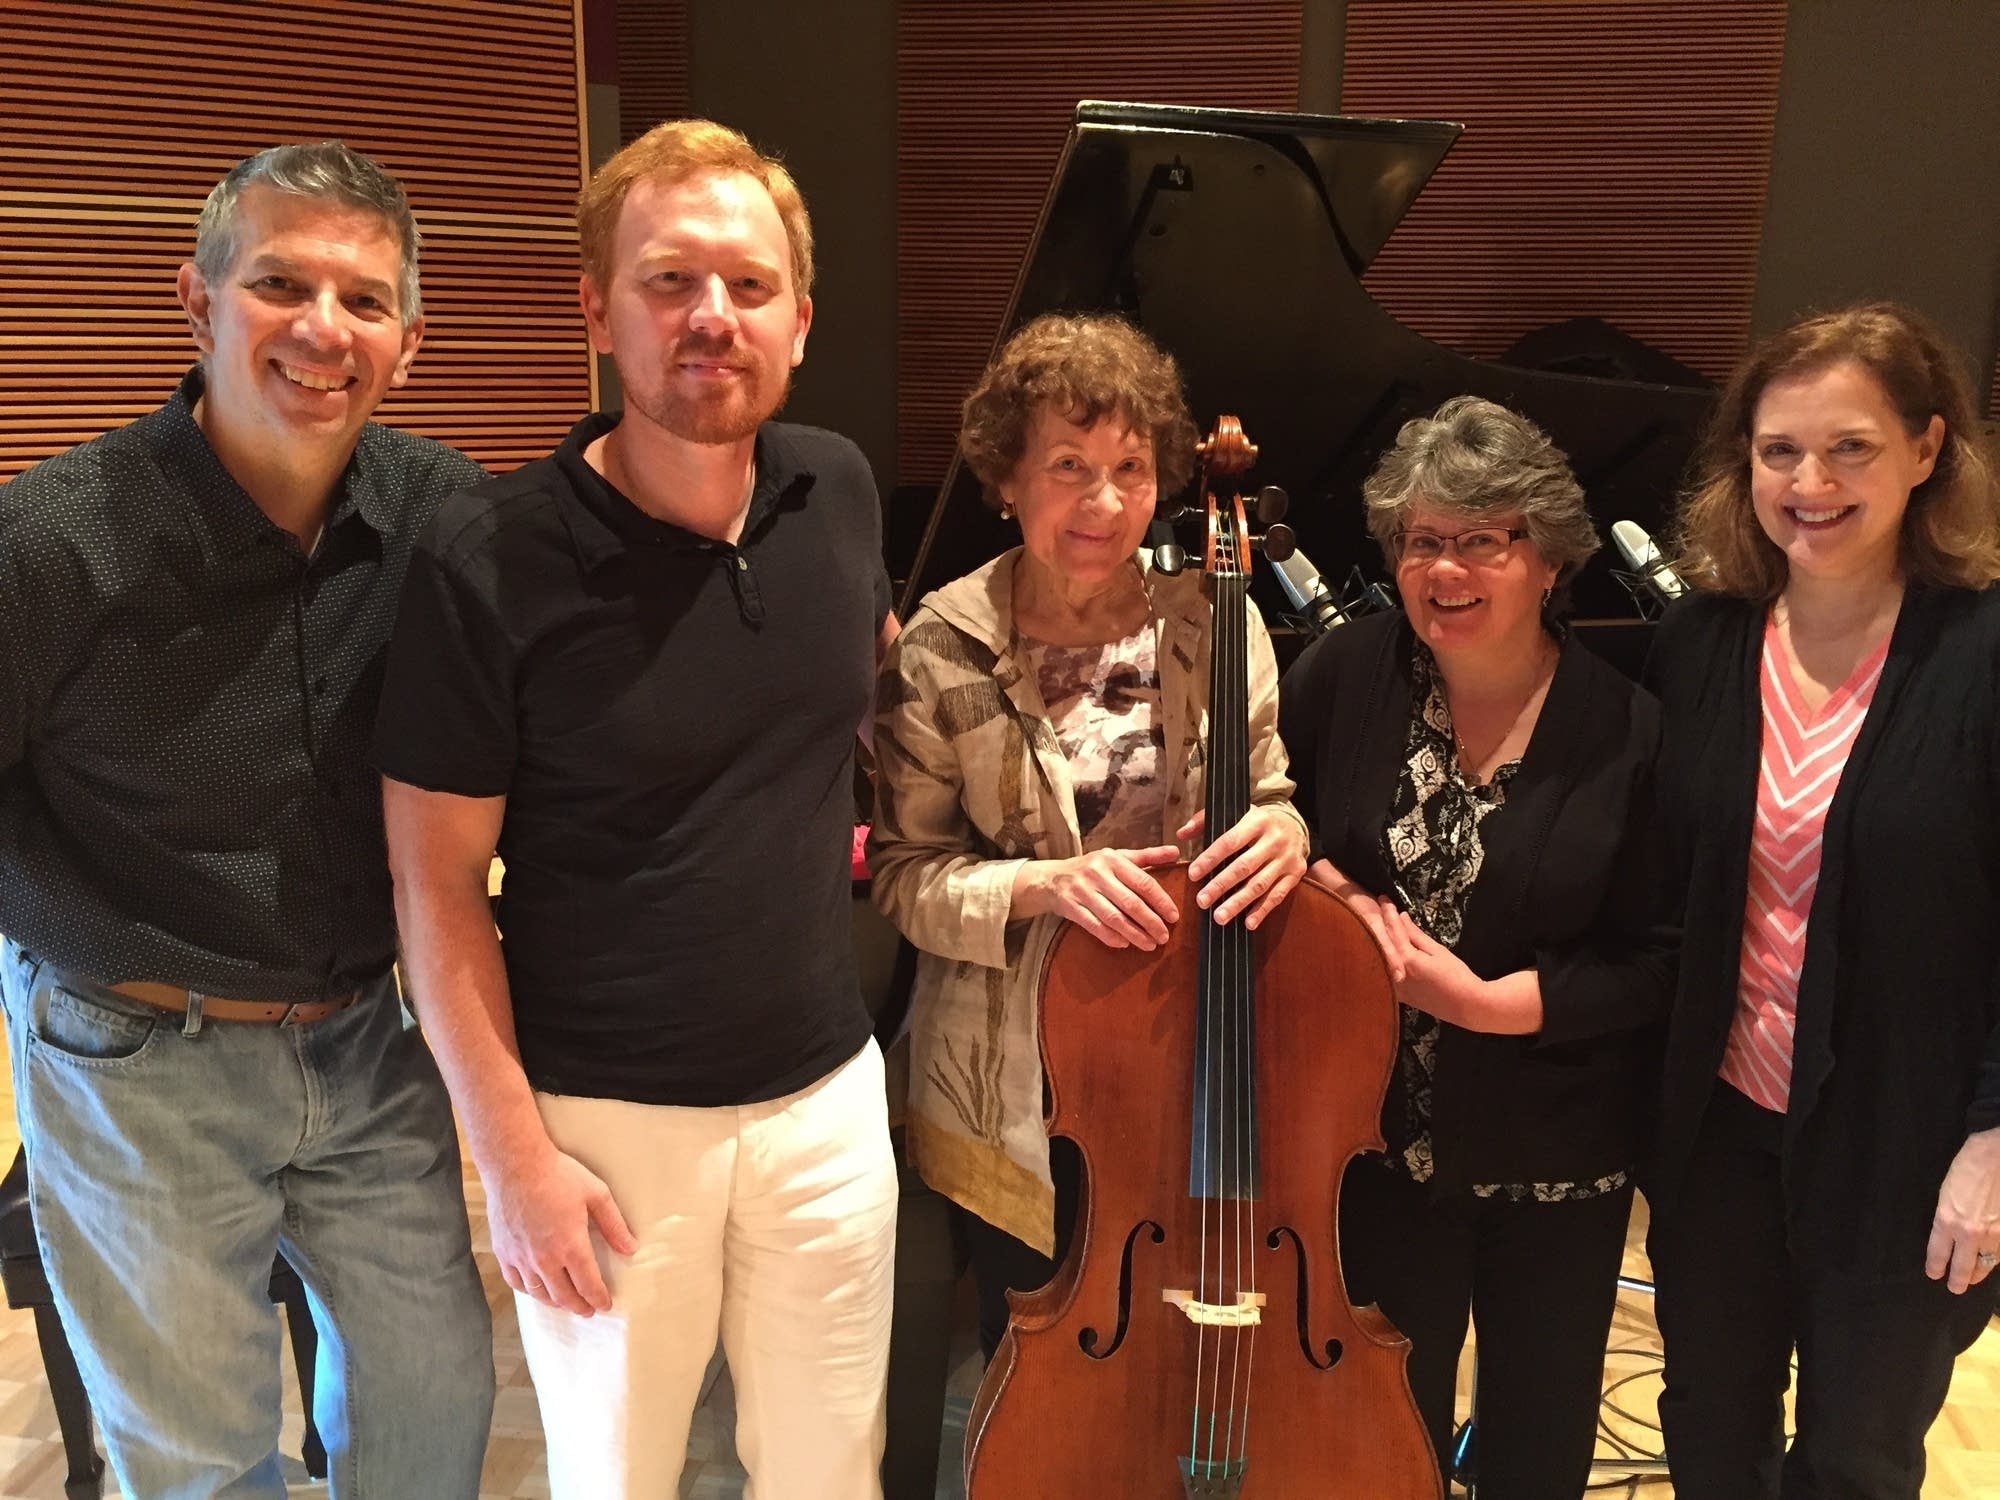 Participants in the International Cello Institute